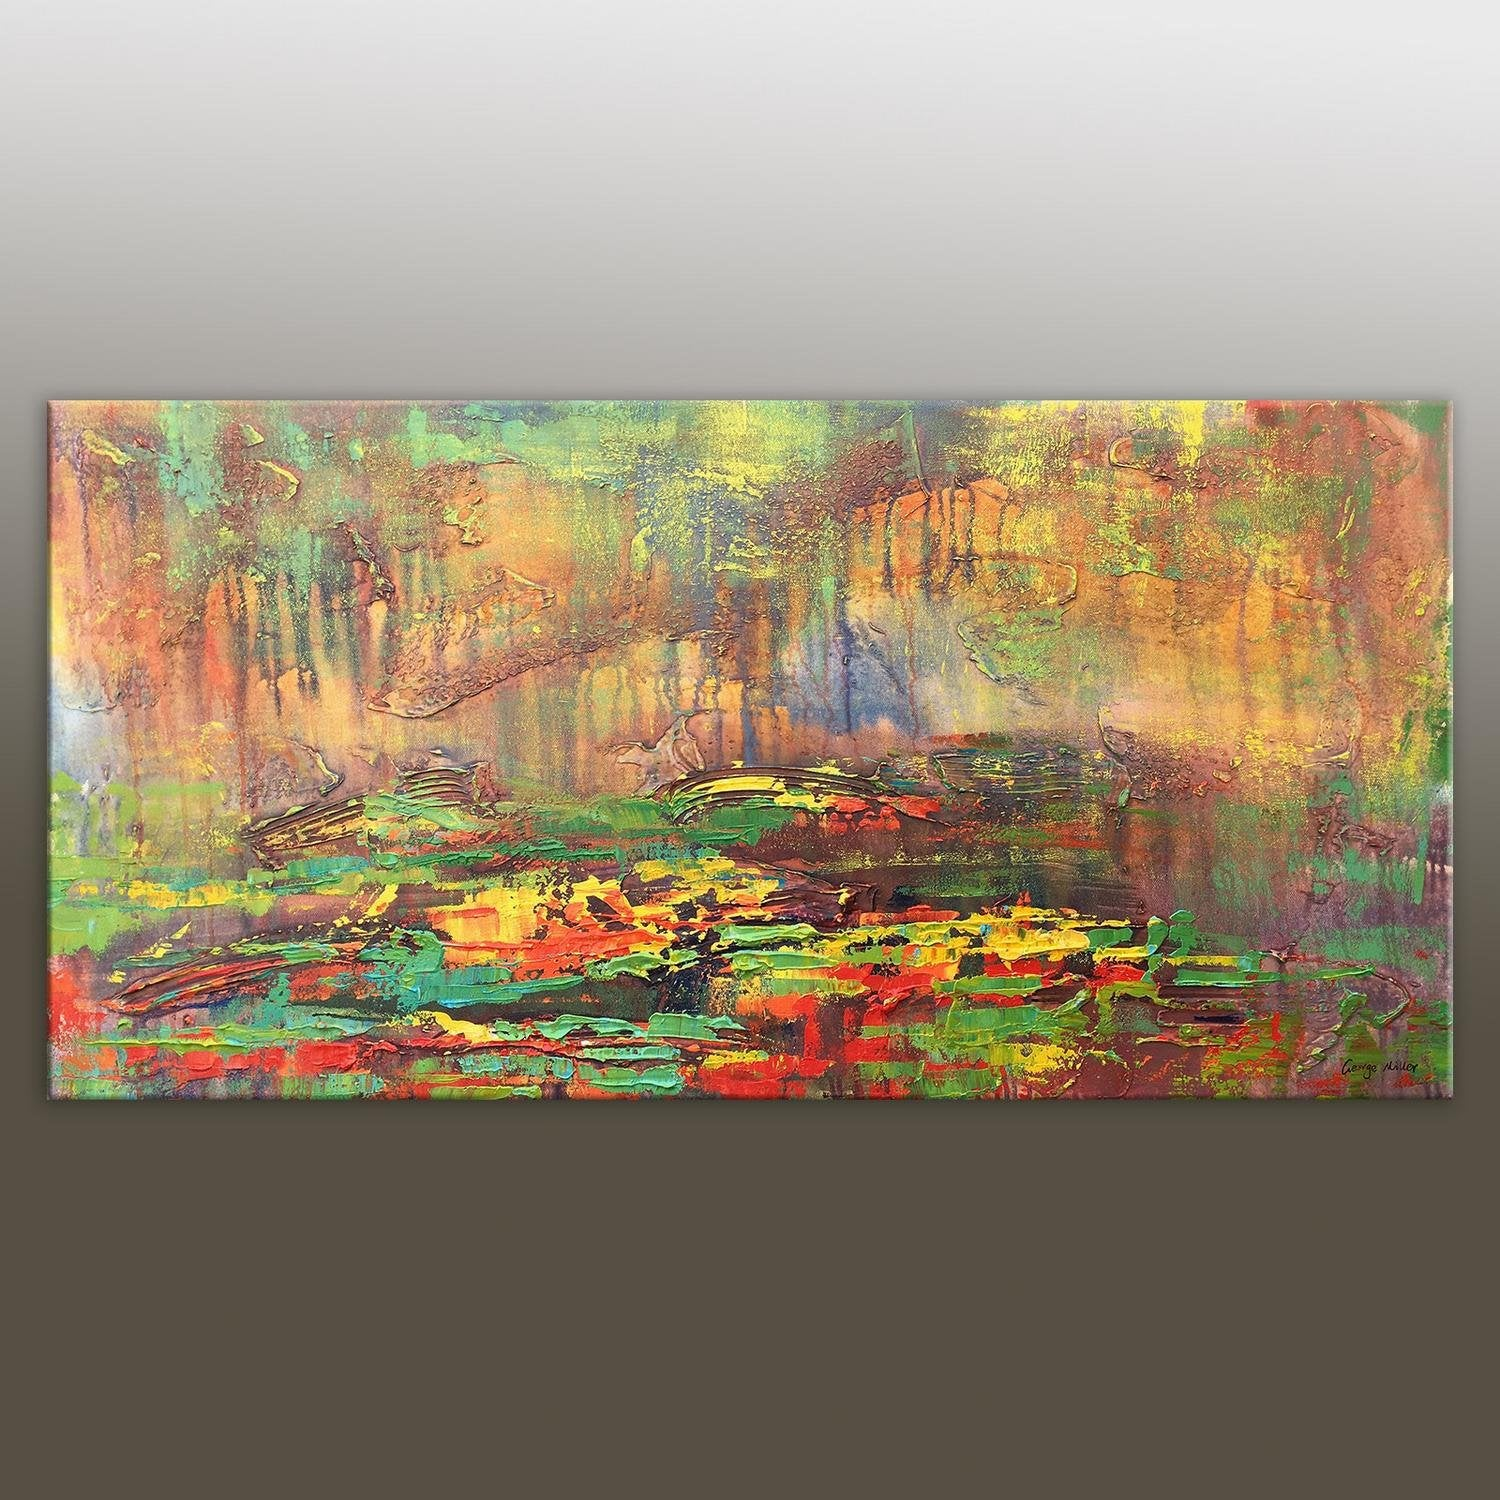 Canvas Art, Large Painting, Contemporary Painting, Large Wall Art, Original Landscape Oil Paintings, Living Room Decor, Abstract Painting